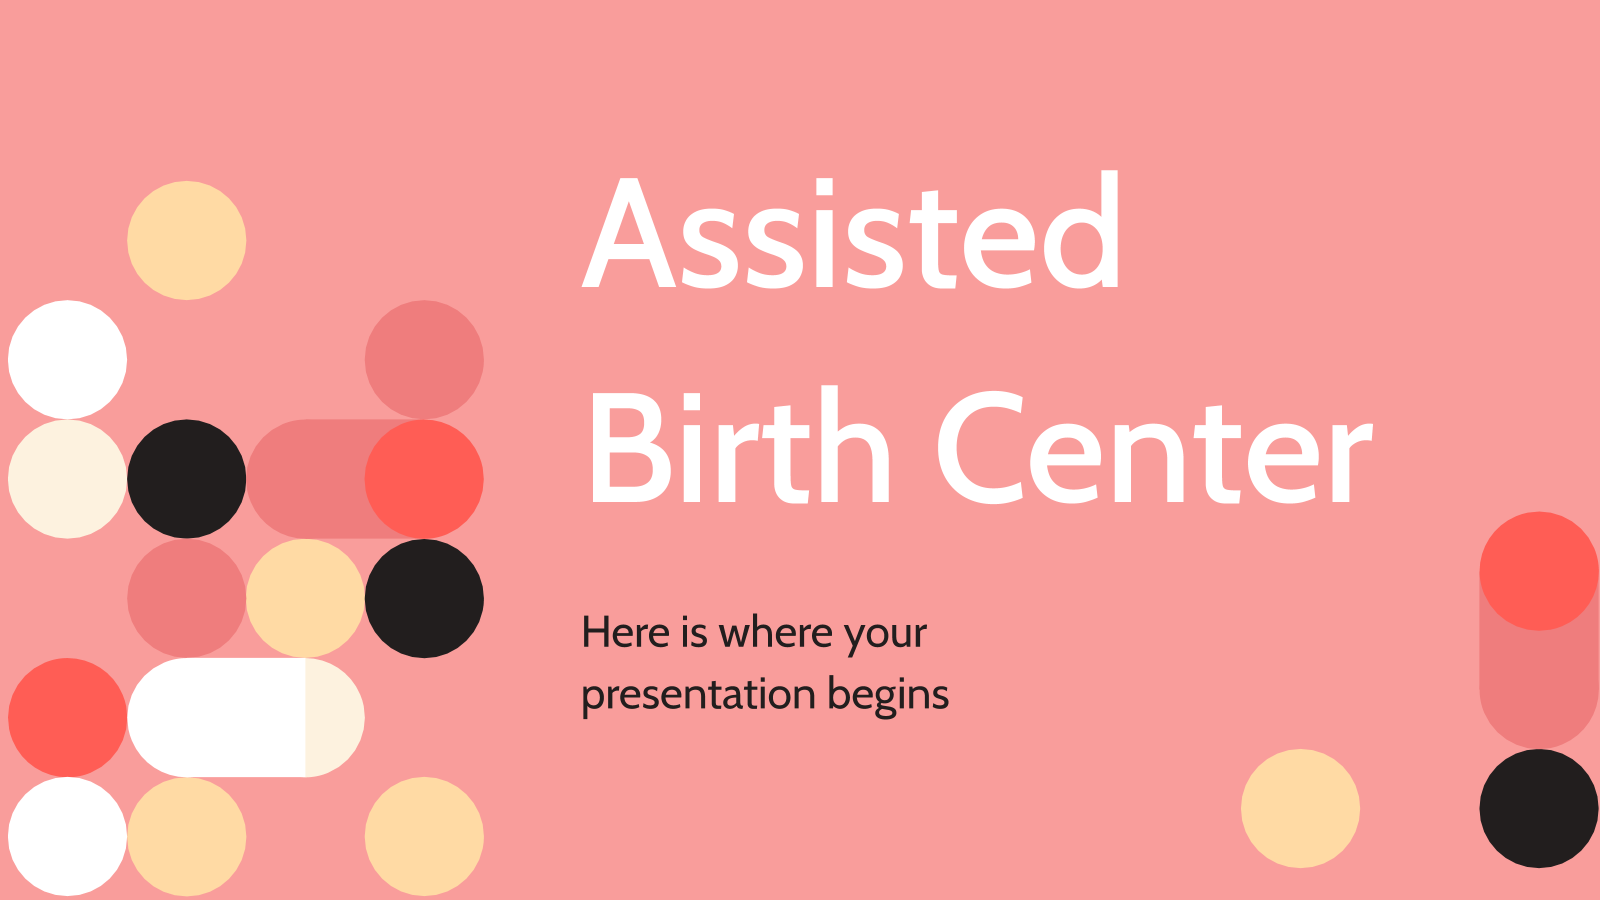 Assisted Birth Center presentation template